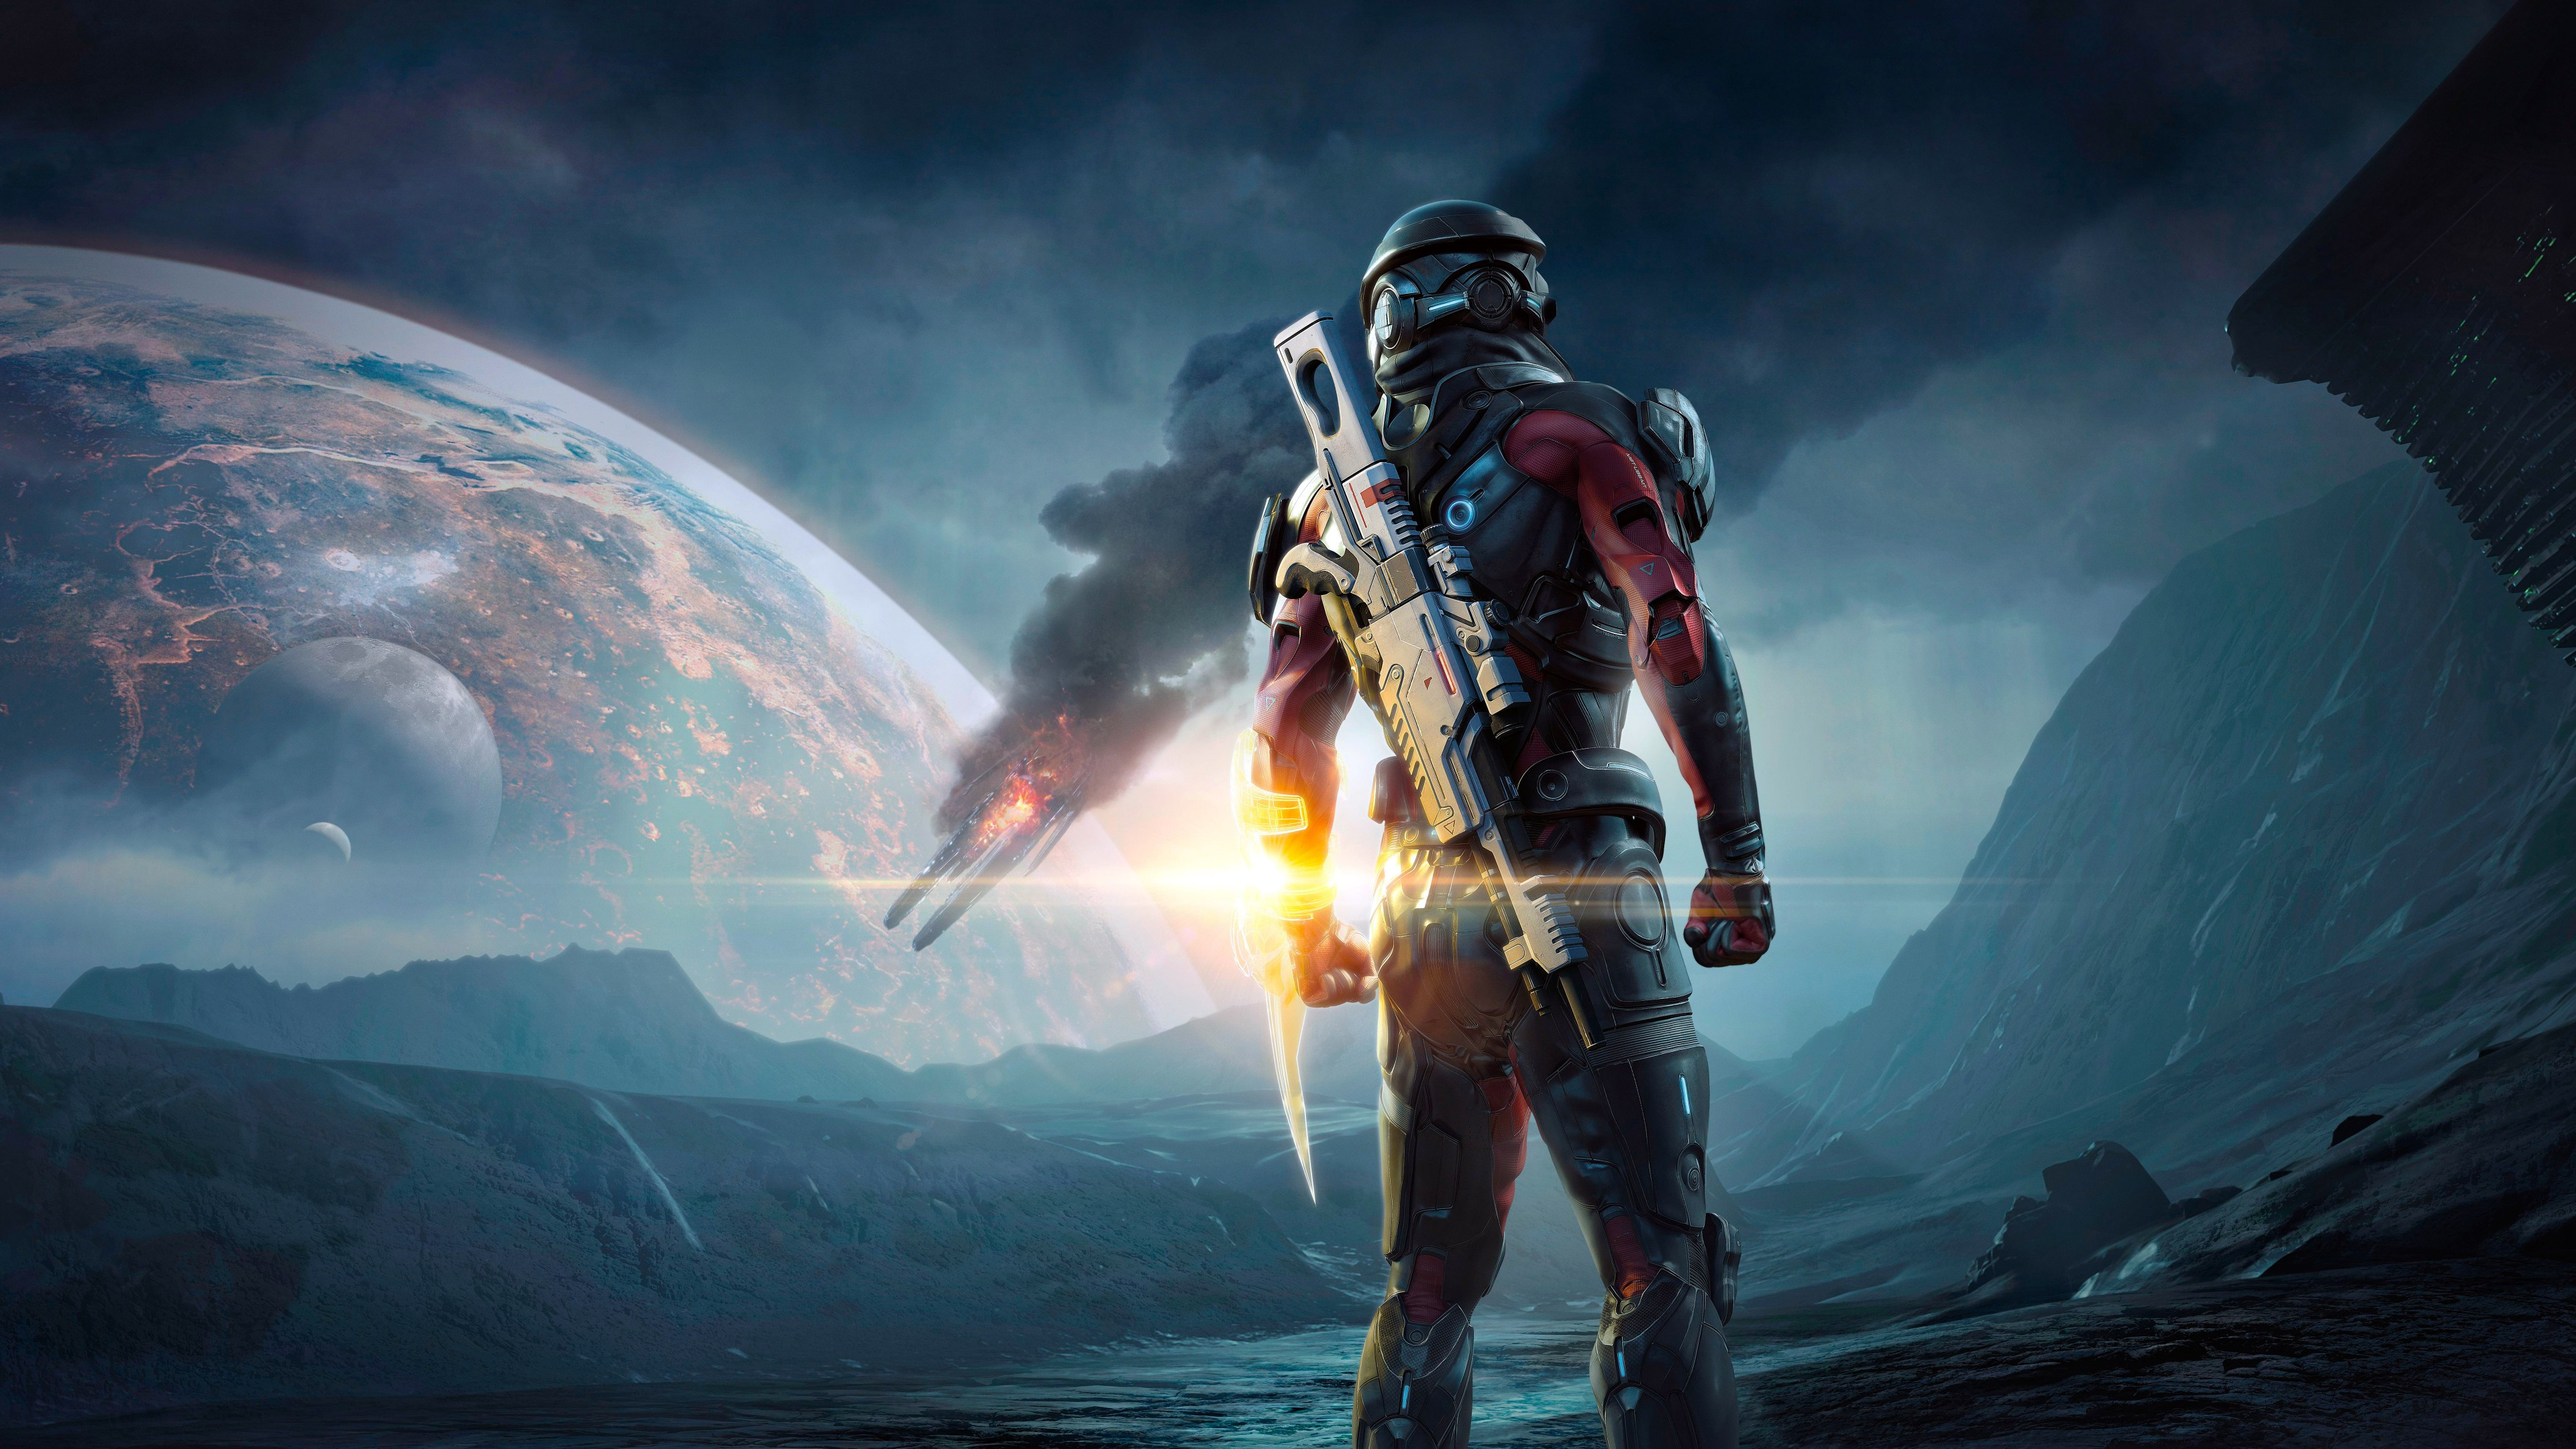 Apple Iphone 5s Wallpaper Hd Download Mass Effect Andromeda 4k Wallpapers Hd Wallpapers Id